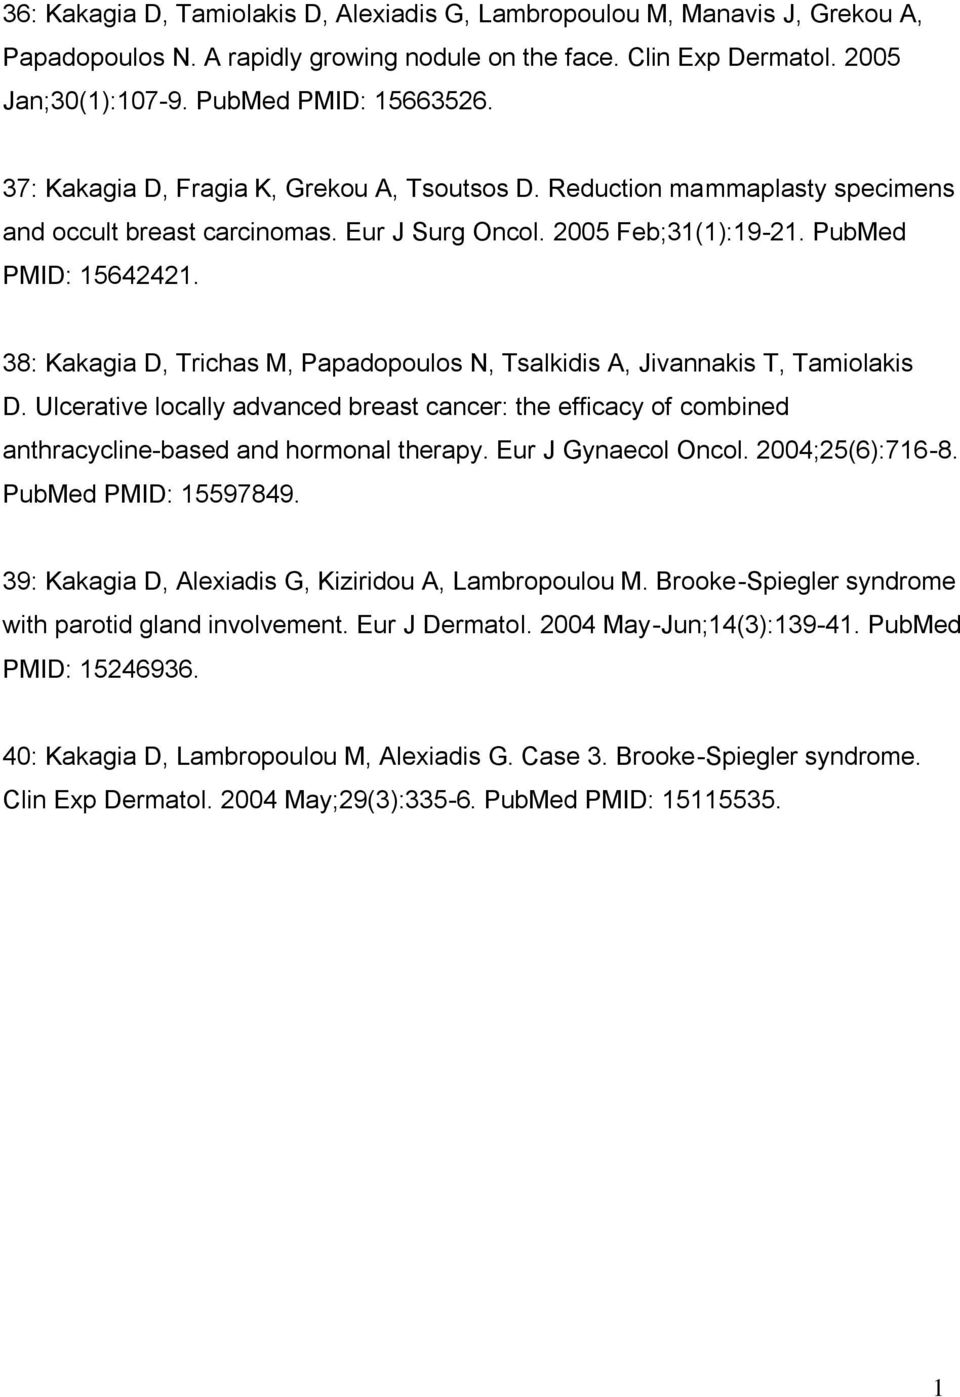 38: Kakagia D, Trichas M, Papadopoulos N, Tsalkidis A, Jivannakis T, Tamiolakis D. Ulcerative locally advanced breast cancer: the efficacy of combined anthracycline-based and hormonal therapy.